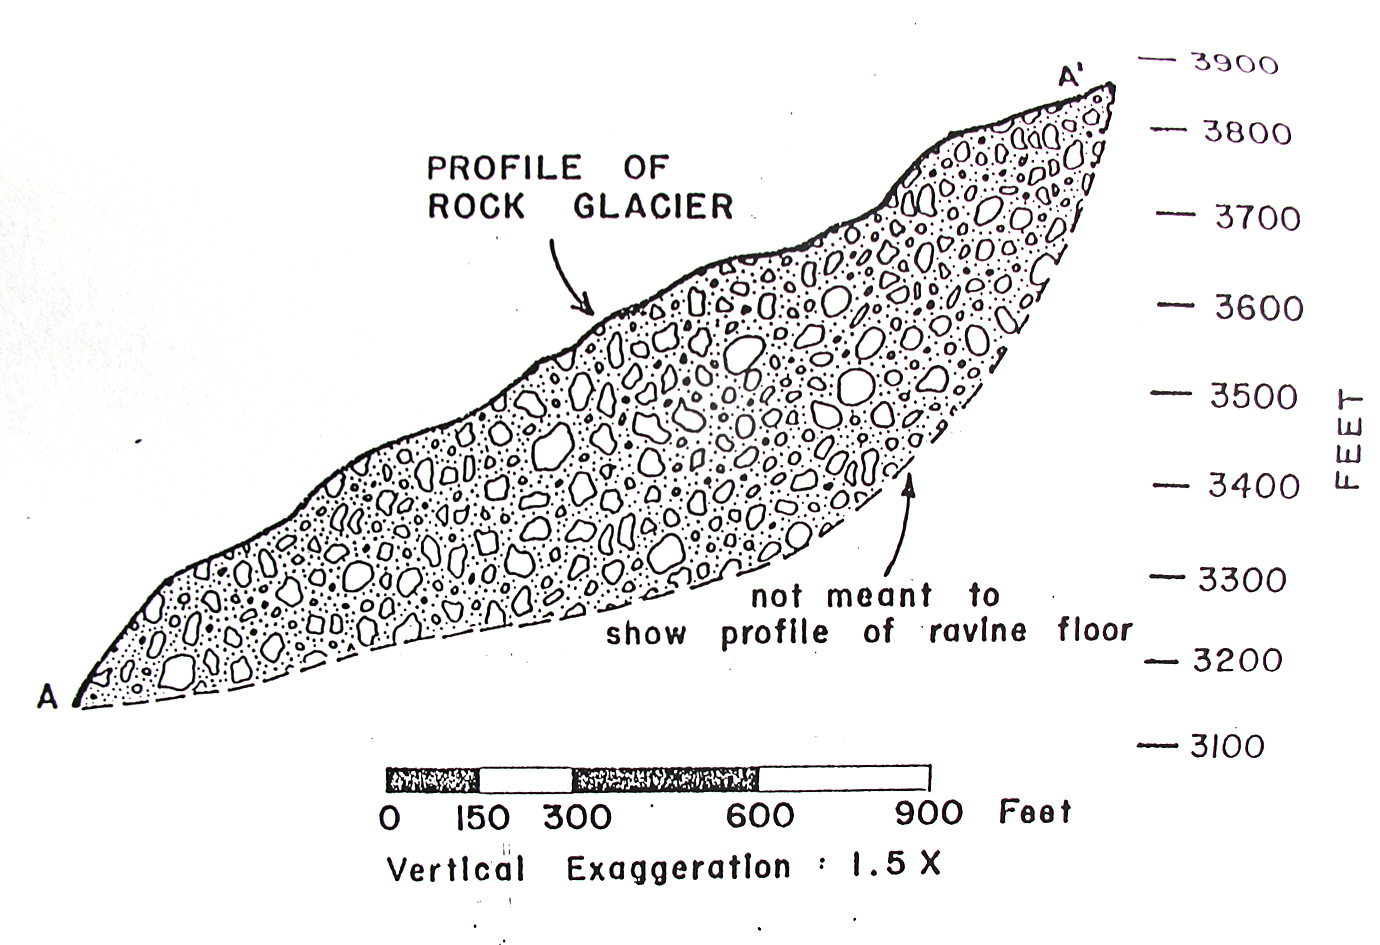 Circue Glacier Landform Diagram